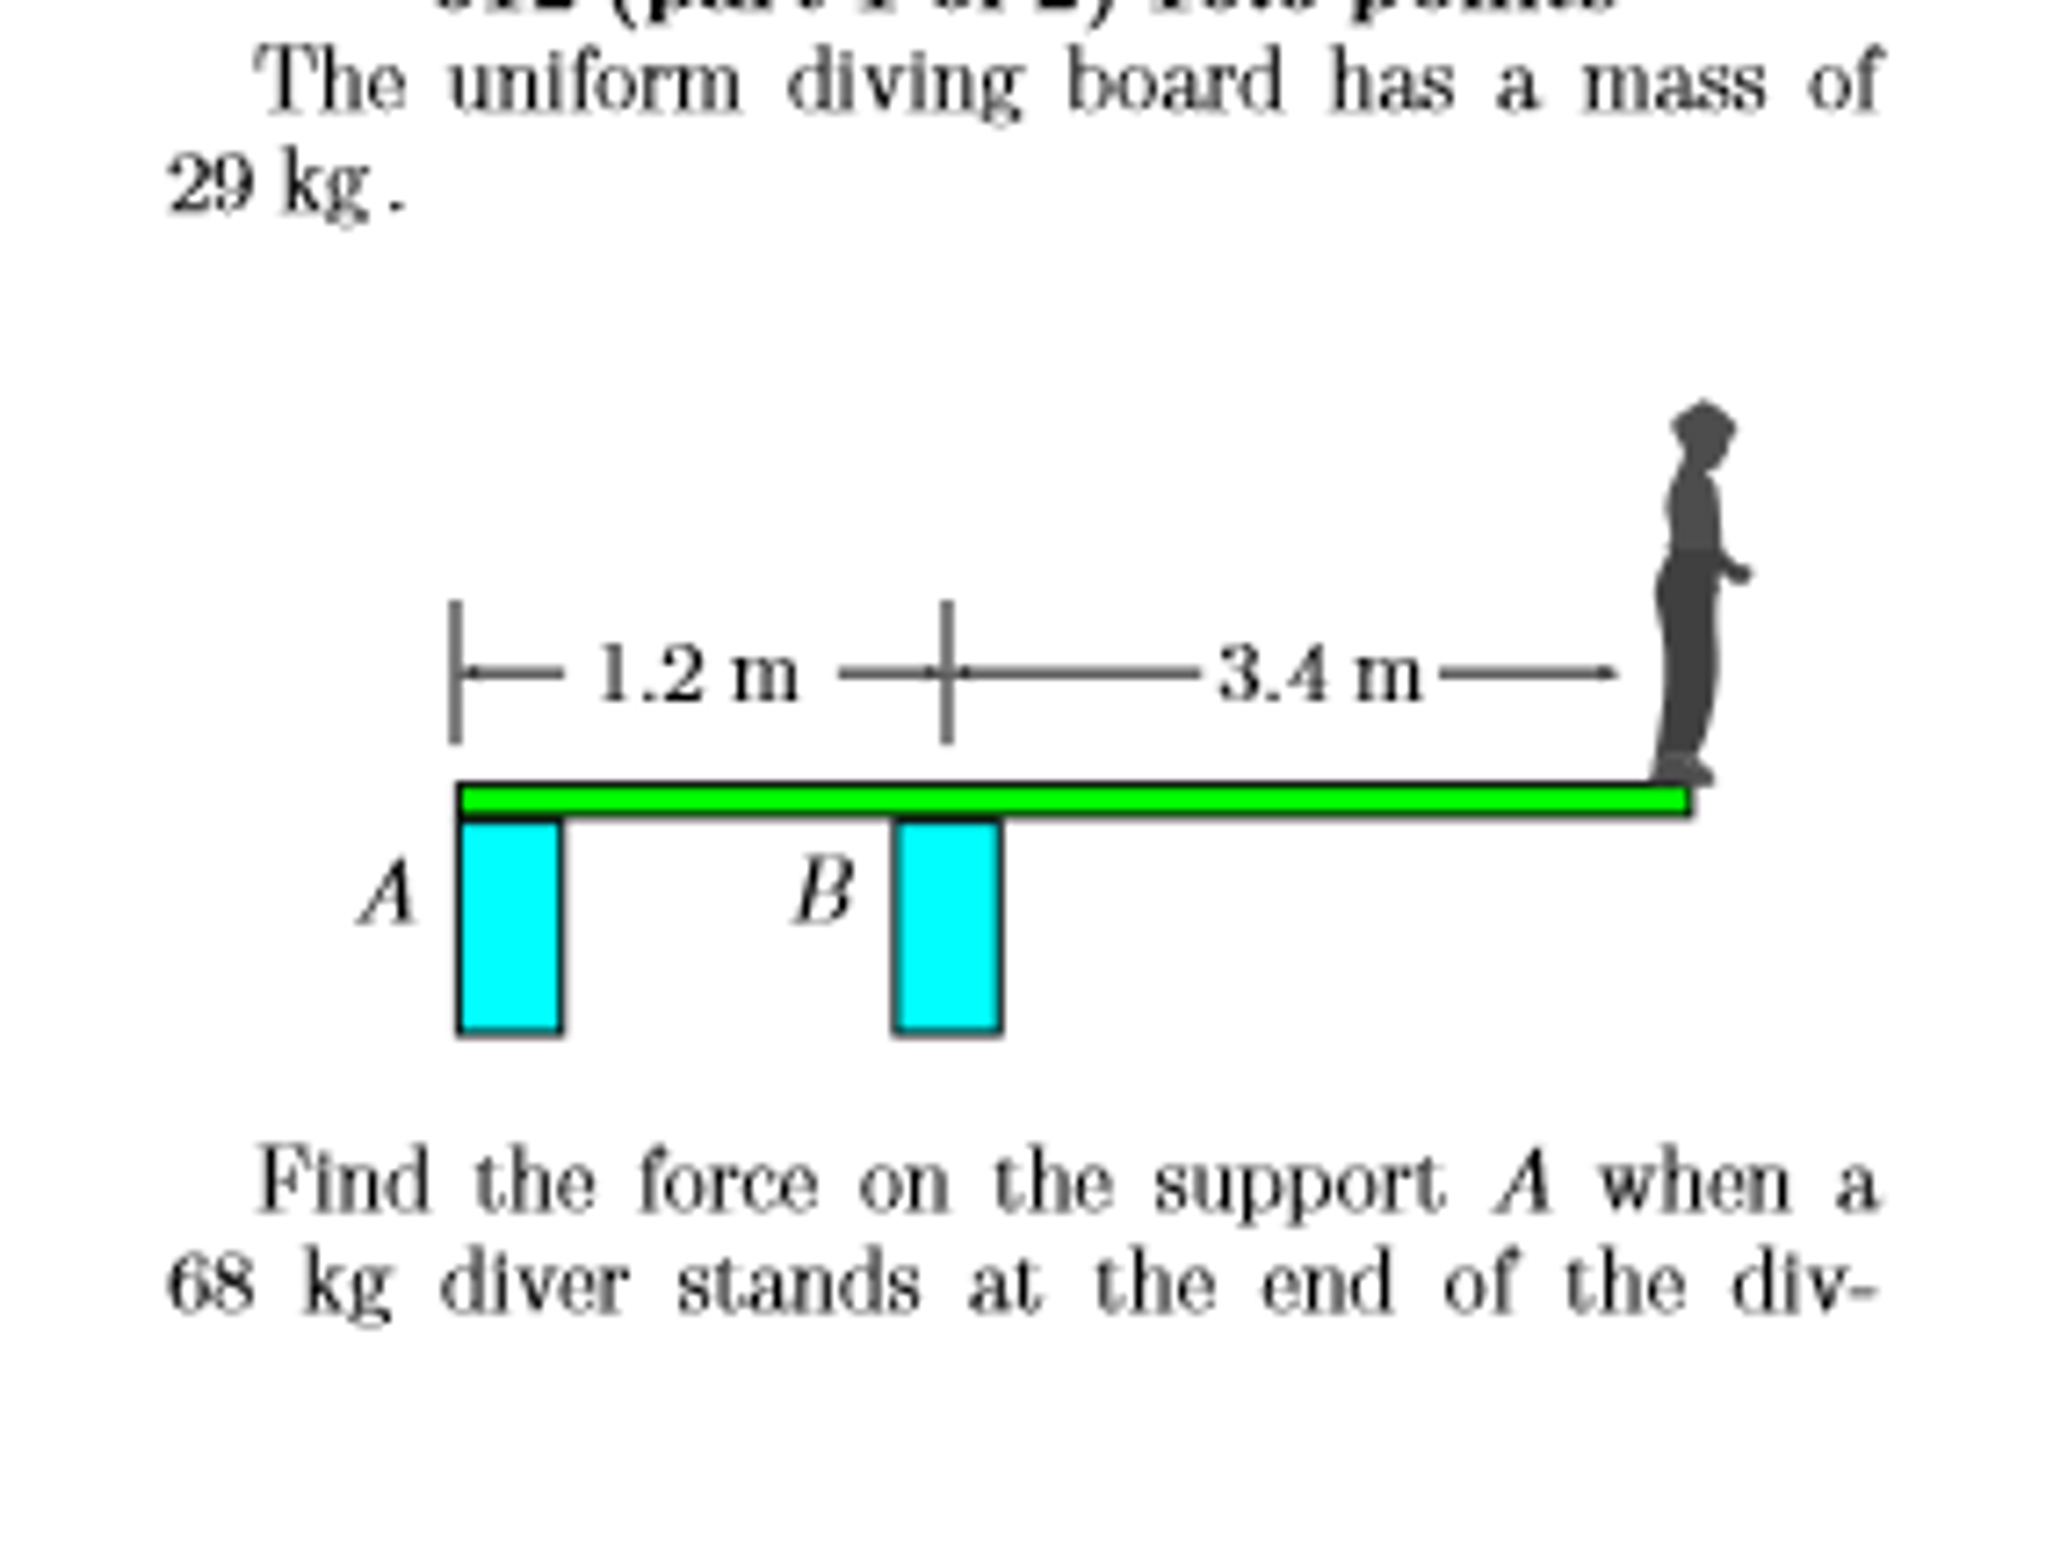 Find Board solved: the uniform diving board has a mass of 29 kg. find